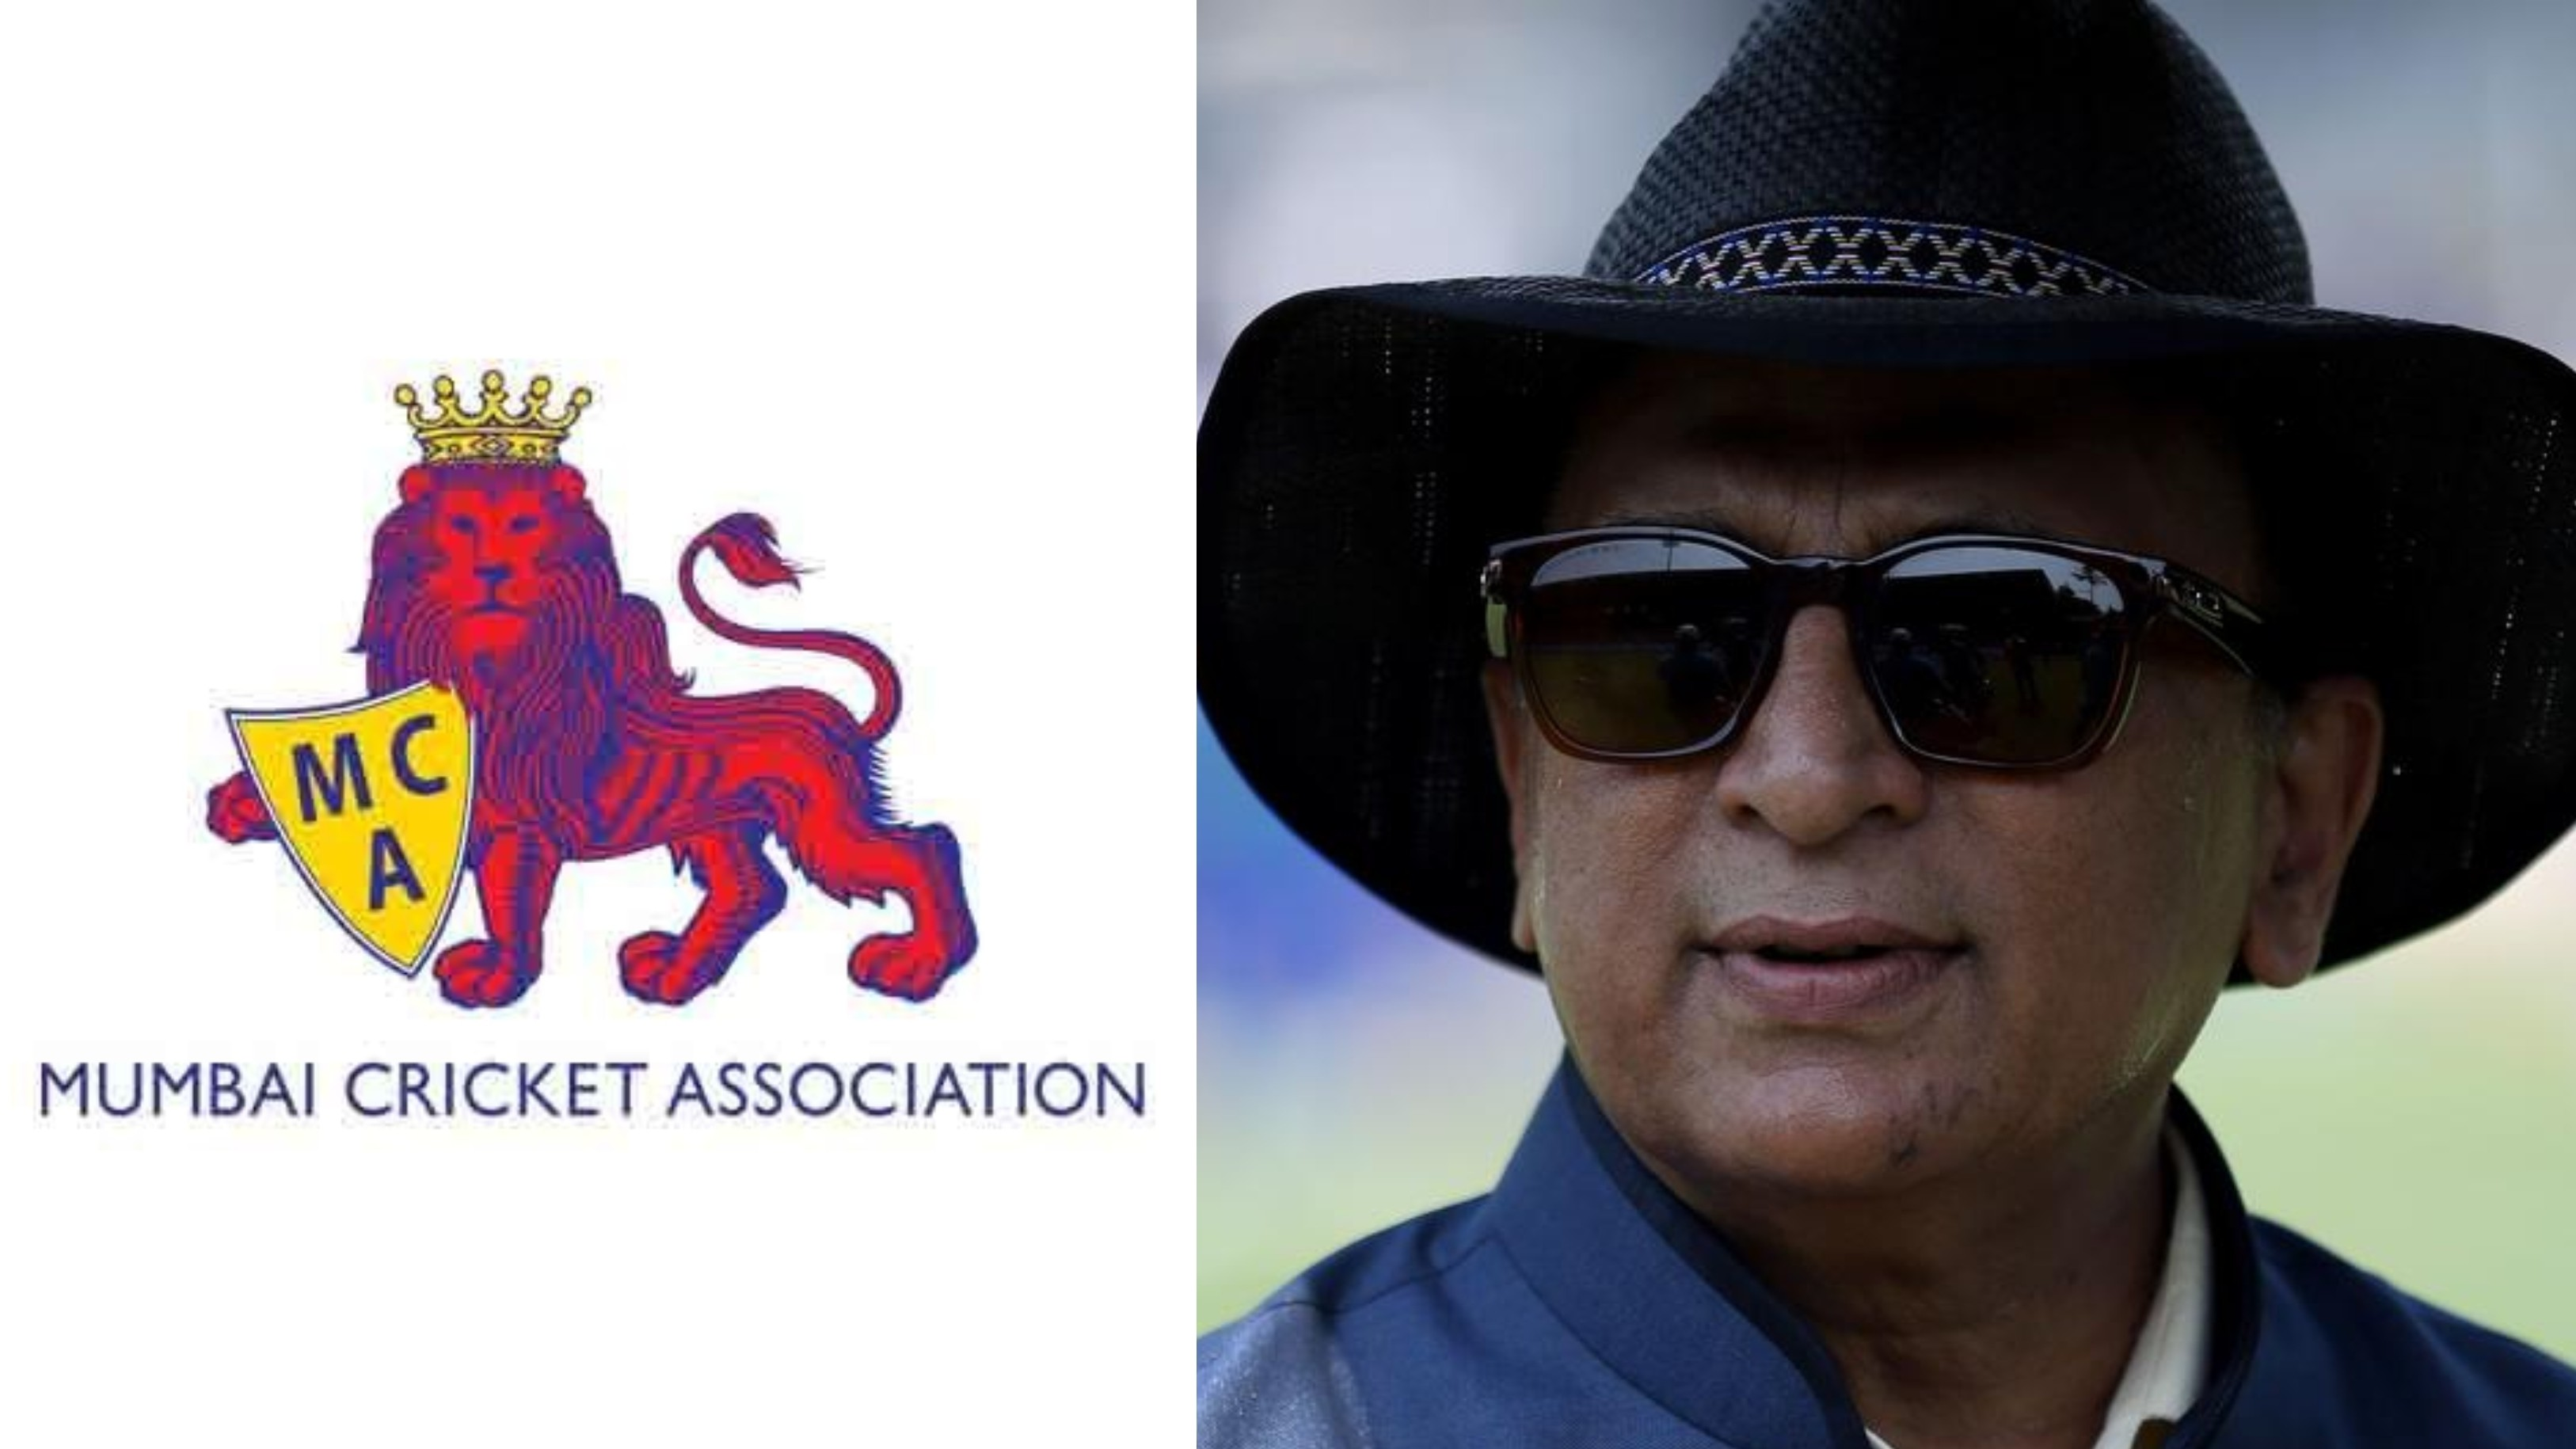 MCA re-allocates two seats for Mrs and Mr. Sunil Gavaskar in Wankhede; Gavaskar says thanks for the sweet gift